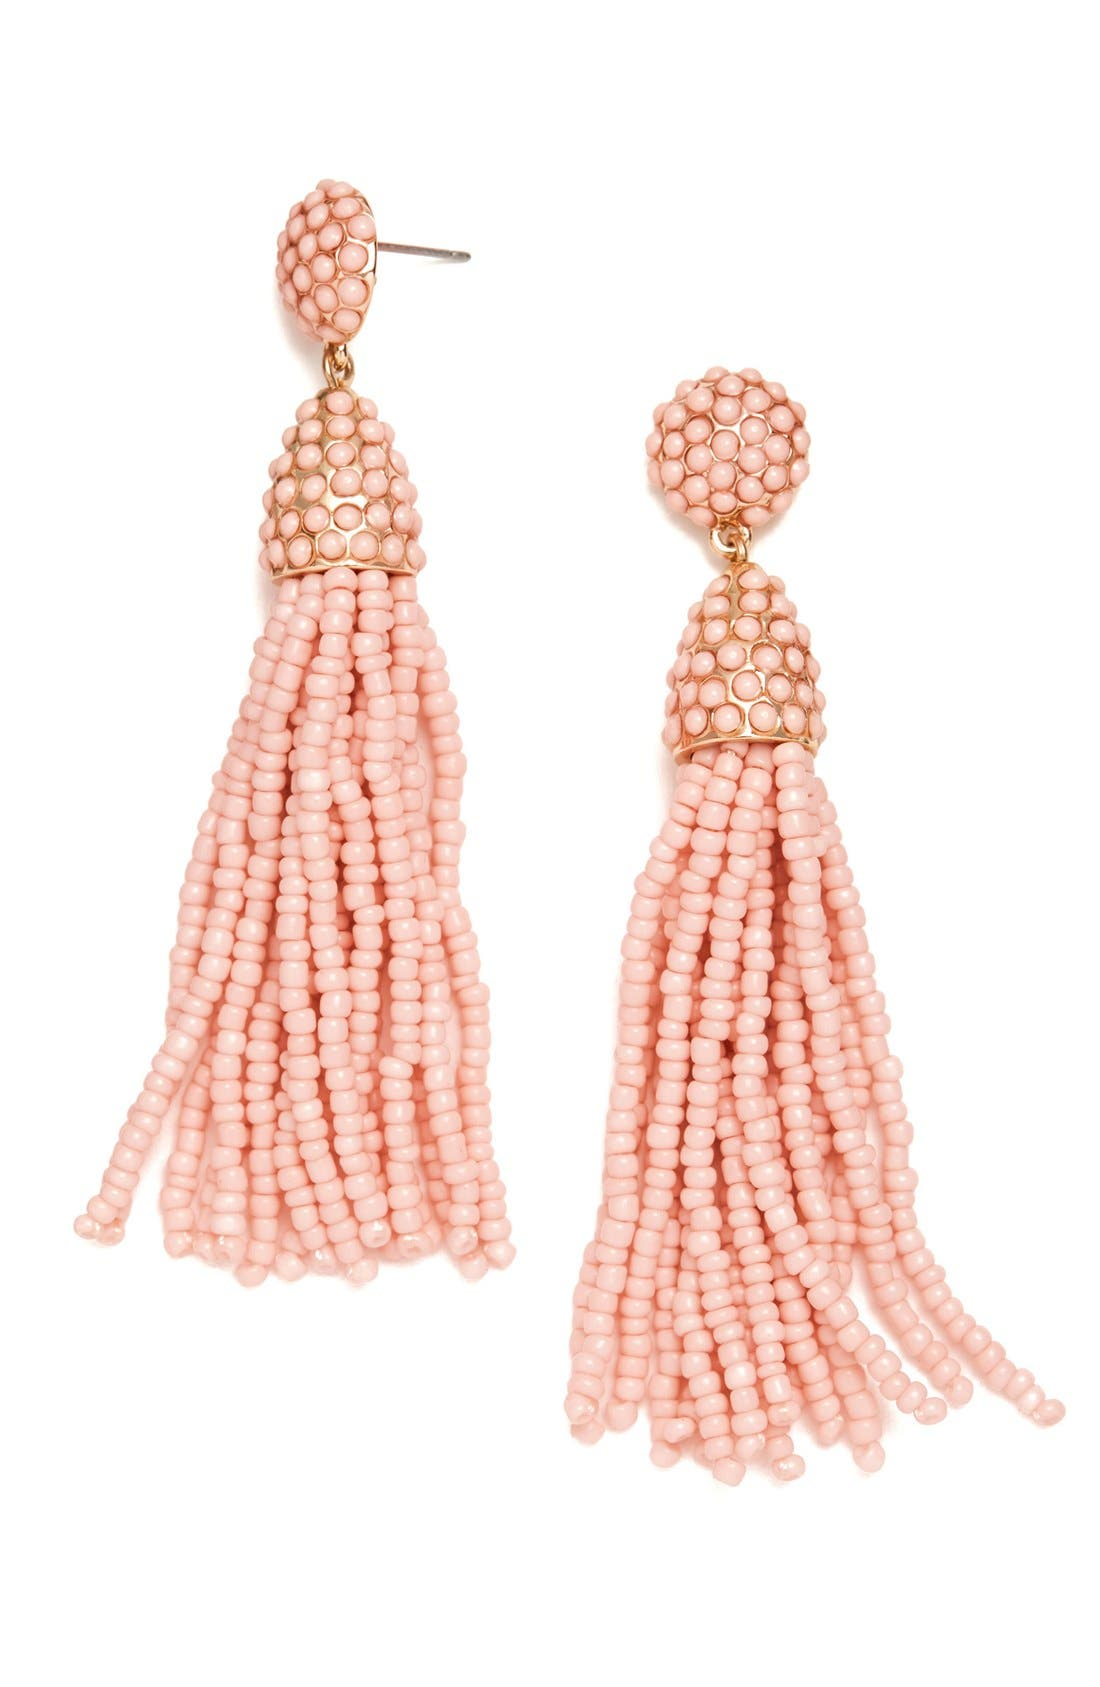 Main Image - BaubleBar 'Piñata' Tassel Earrings